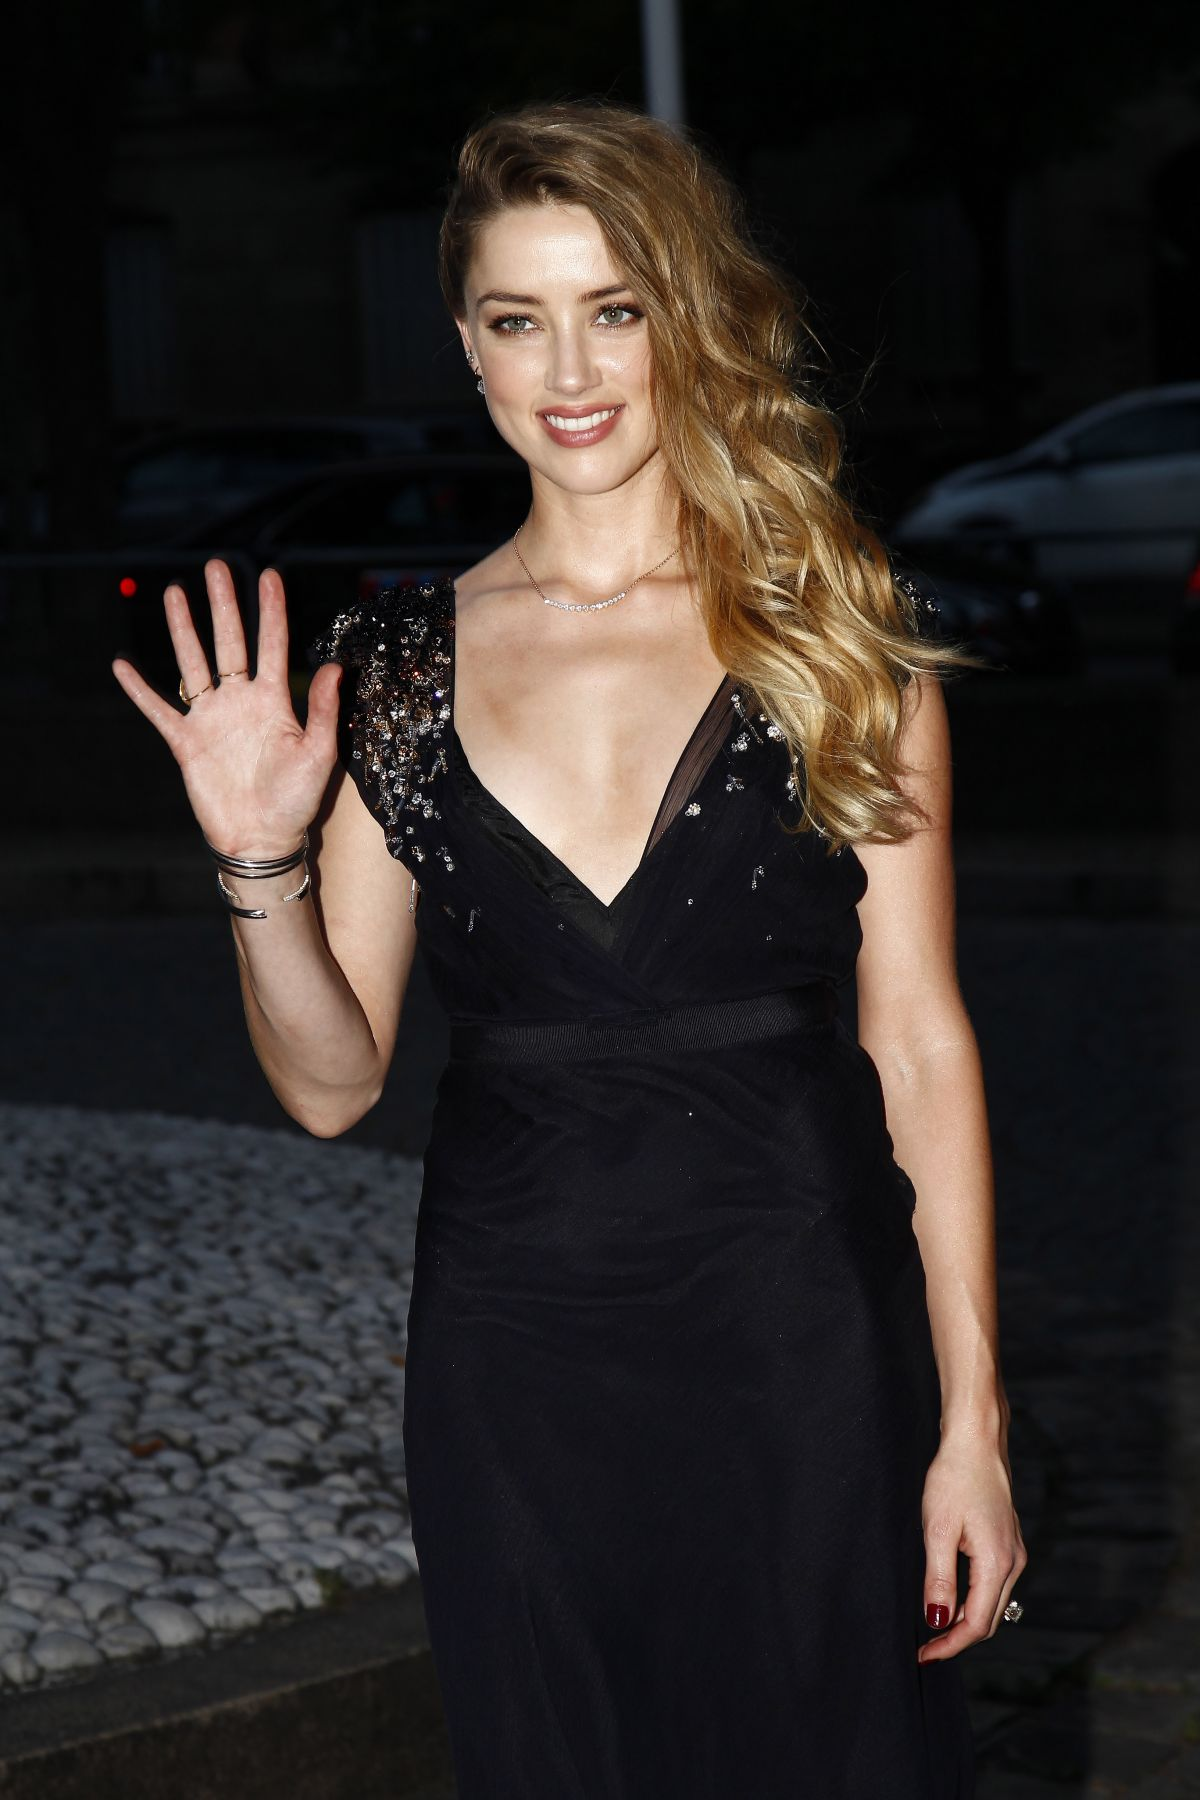 b763036e41a4 AMBER HEARD at Miu Miu Fragrance and Croisiere 2016 Collection Launch in  Paris